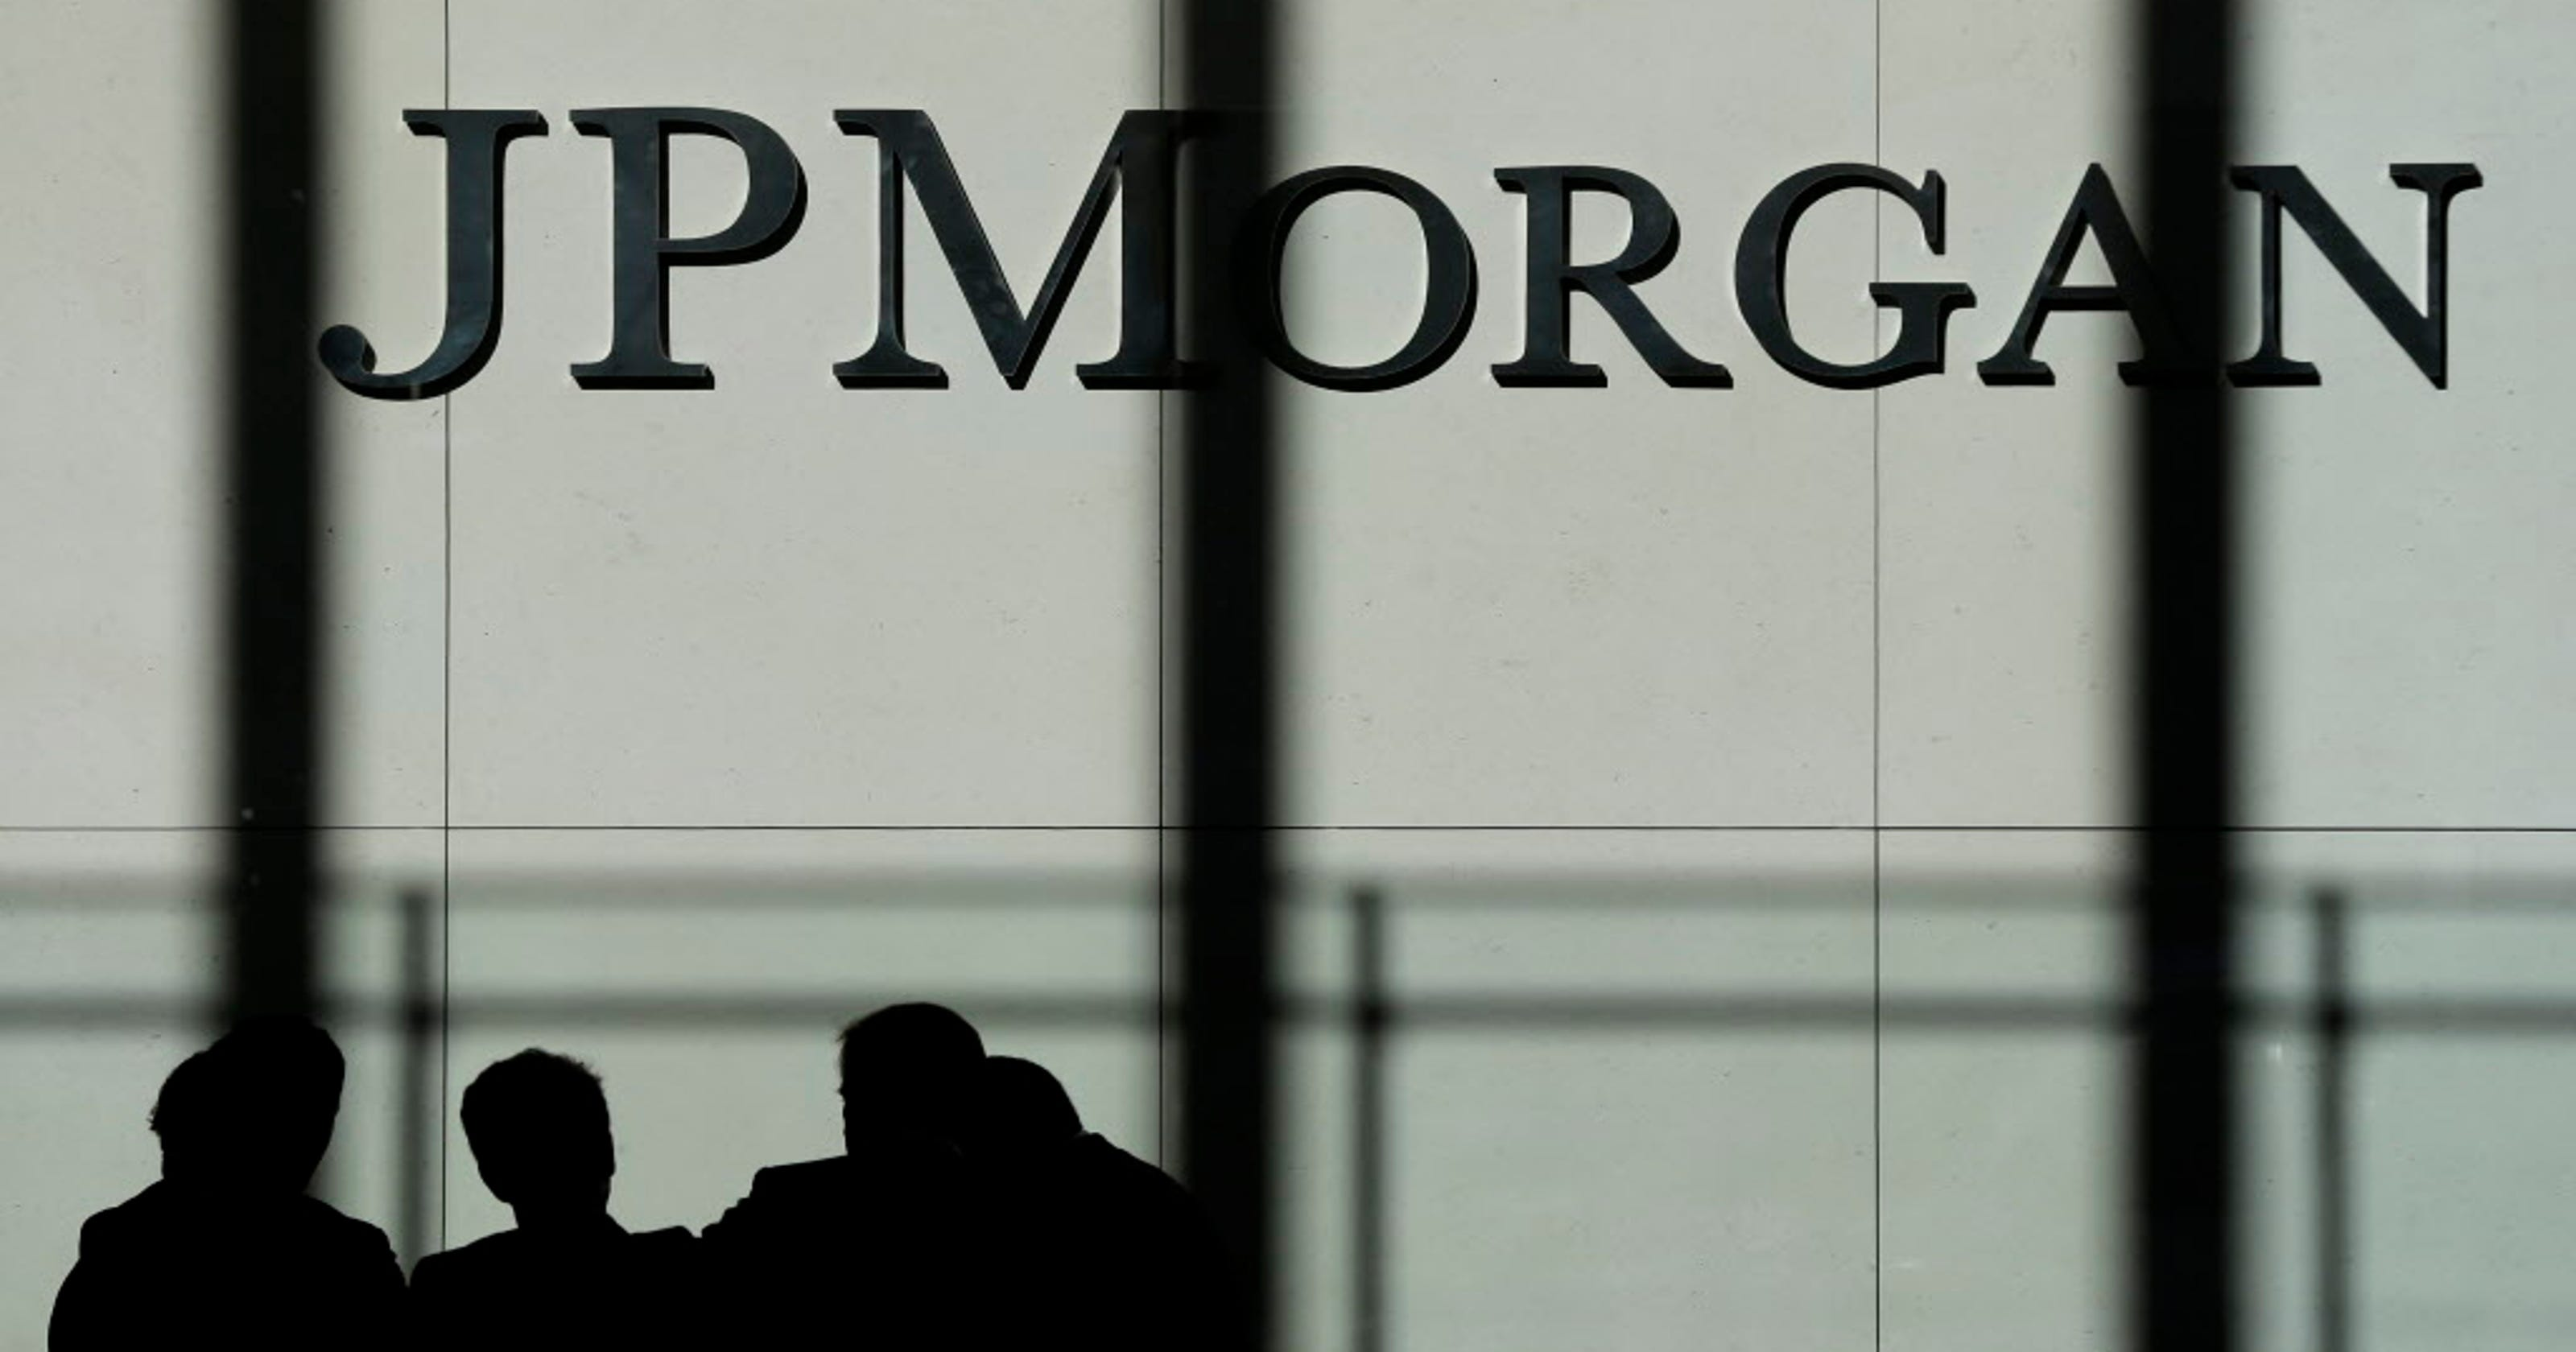 JPMorgan to pay $264M to settle corruption charges